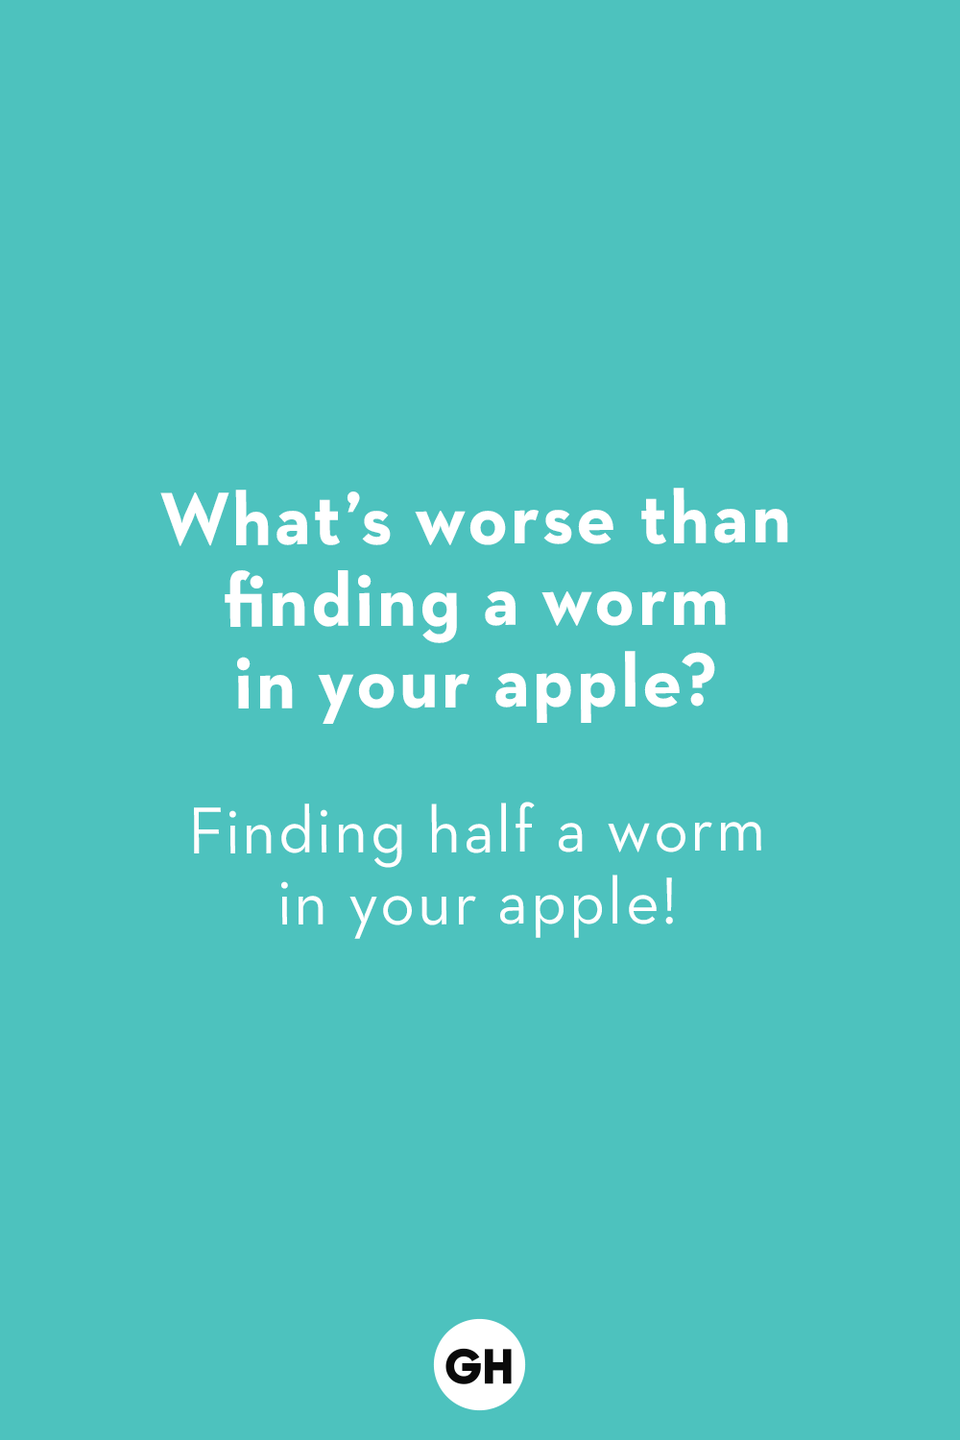 <p>Finding half a worm in your apple!</p>